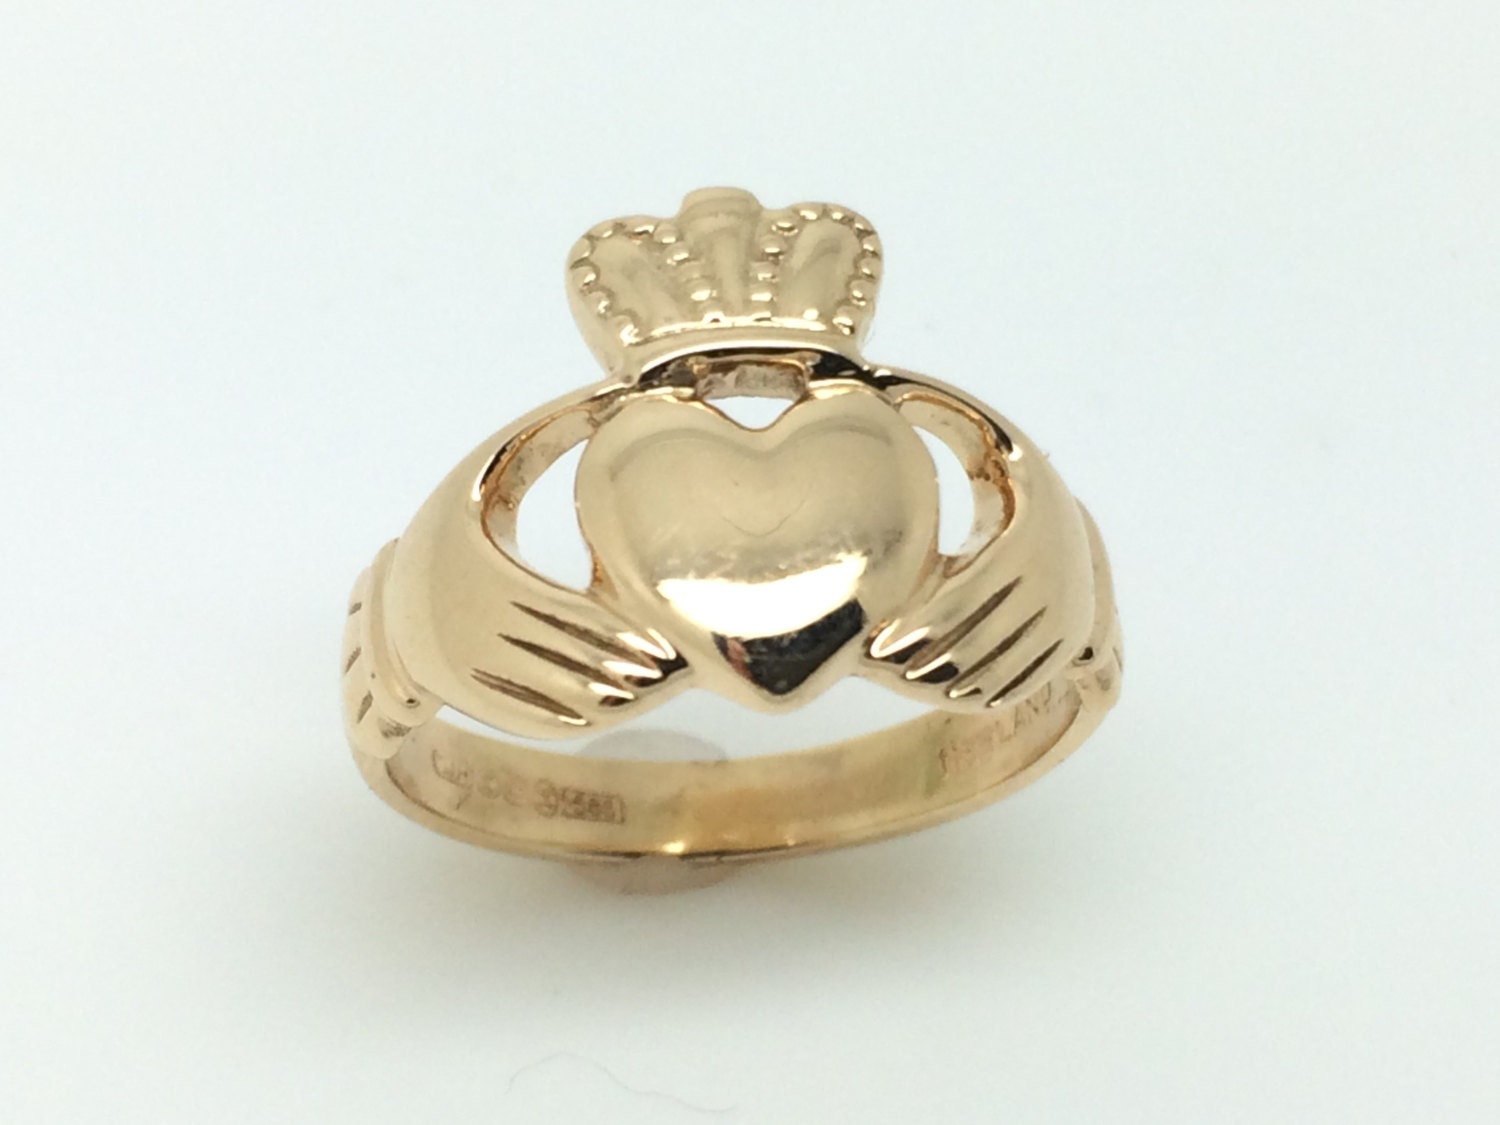 made in ireland authentic irish claddagh ring 14k yellow. Black Bedroom Furniture Sets. Home Design Ideas